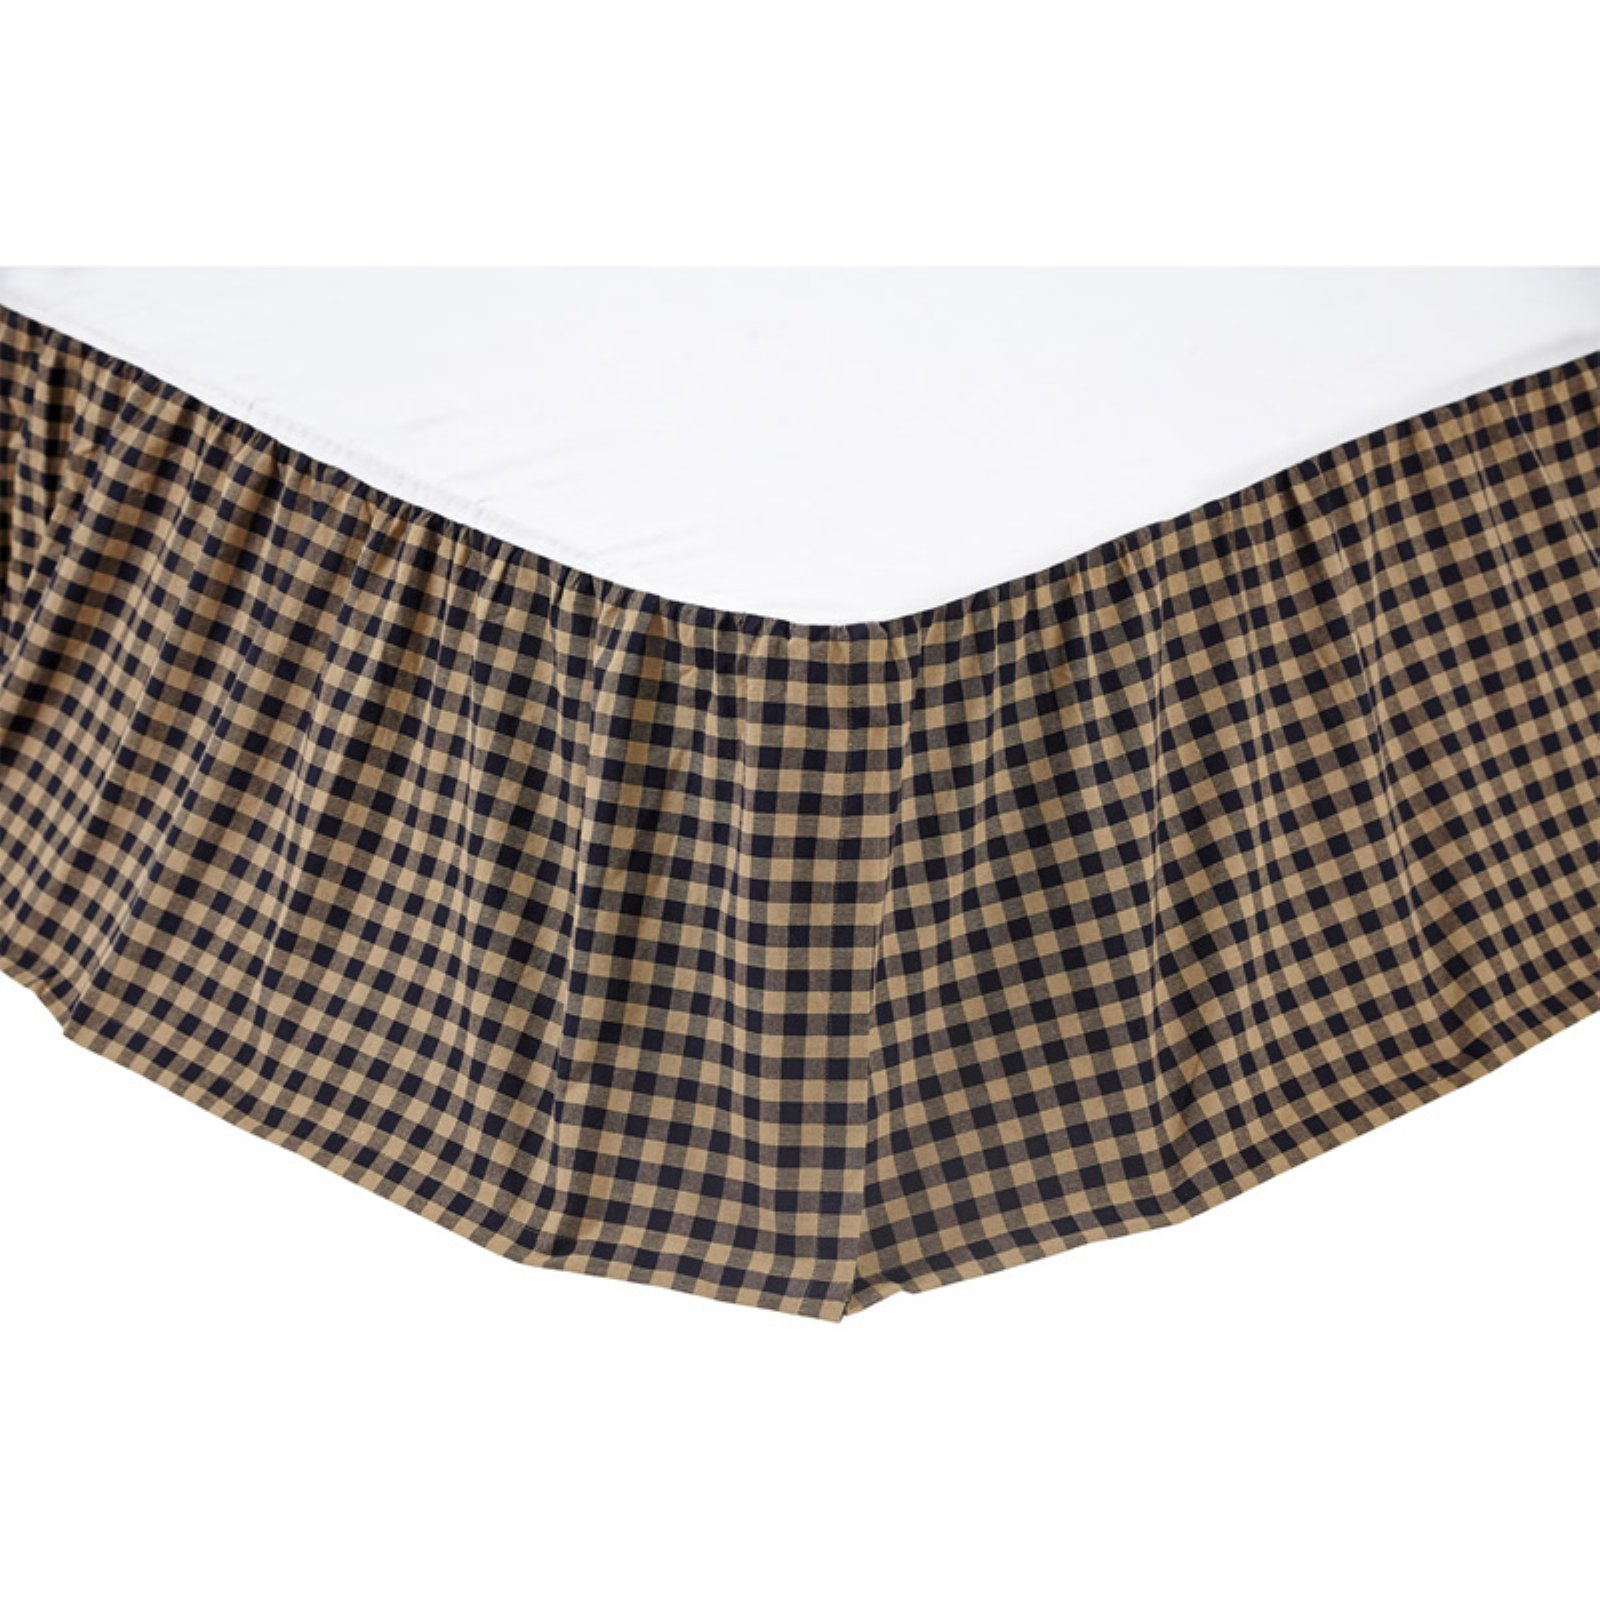 Navy Check Bedskirt by VHC Brands by Victorian Heart Company